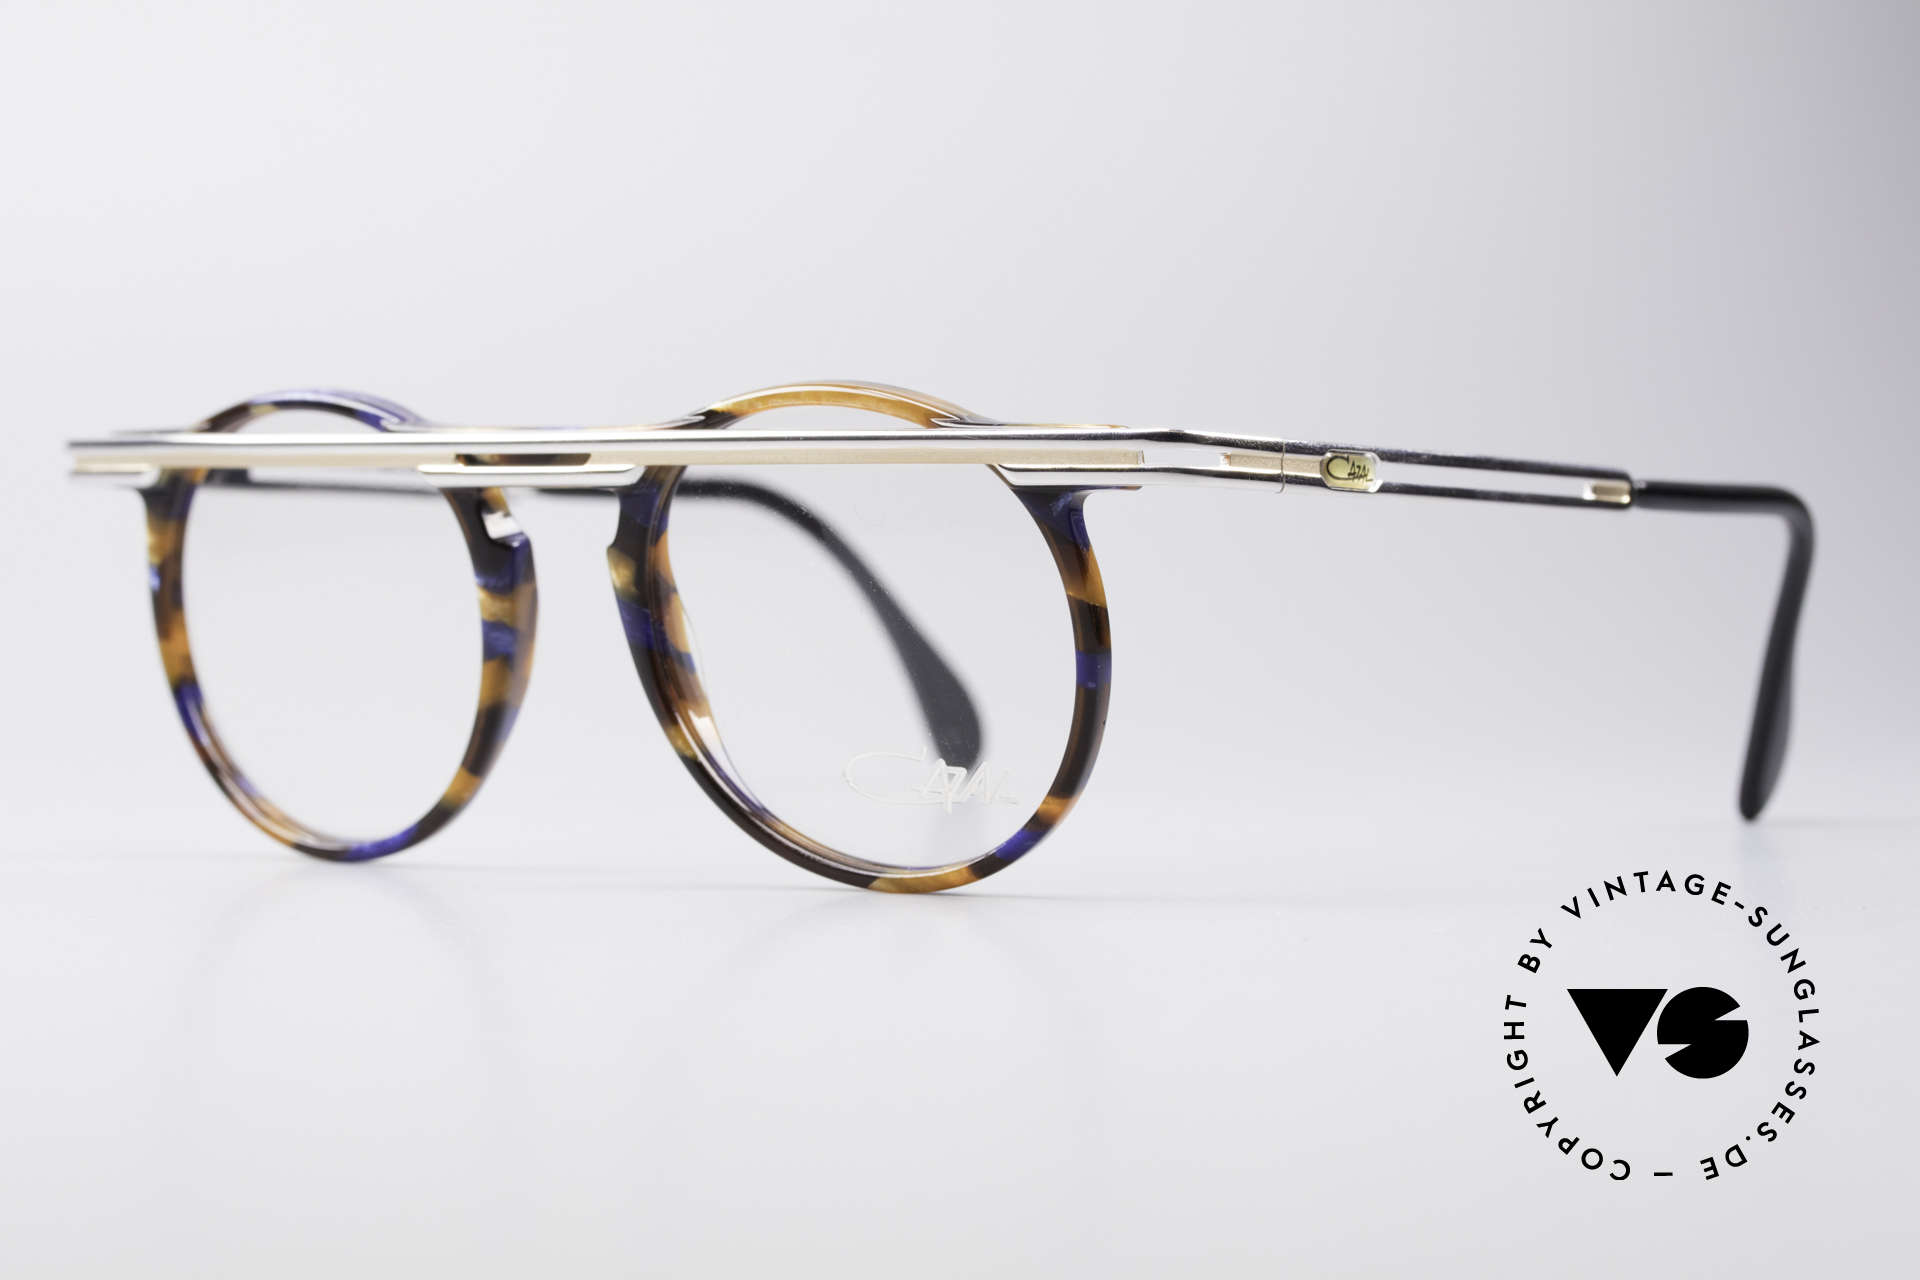 Cazal 648 Cari Zalloni 90's Eyeglasses, extroverted frame construction with unique coloring, Made for Men and Women